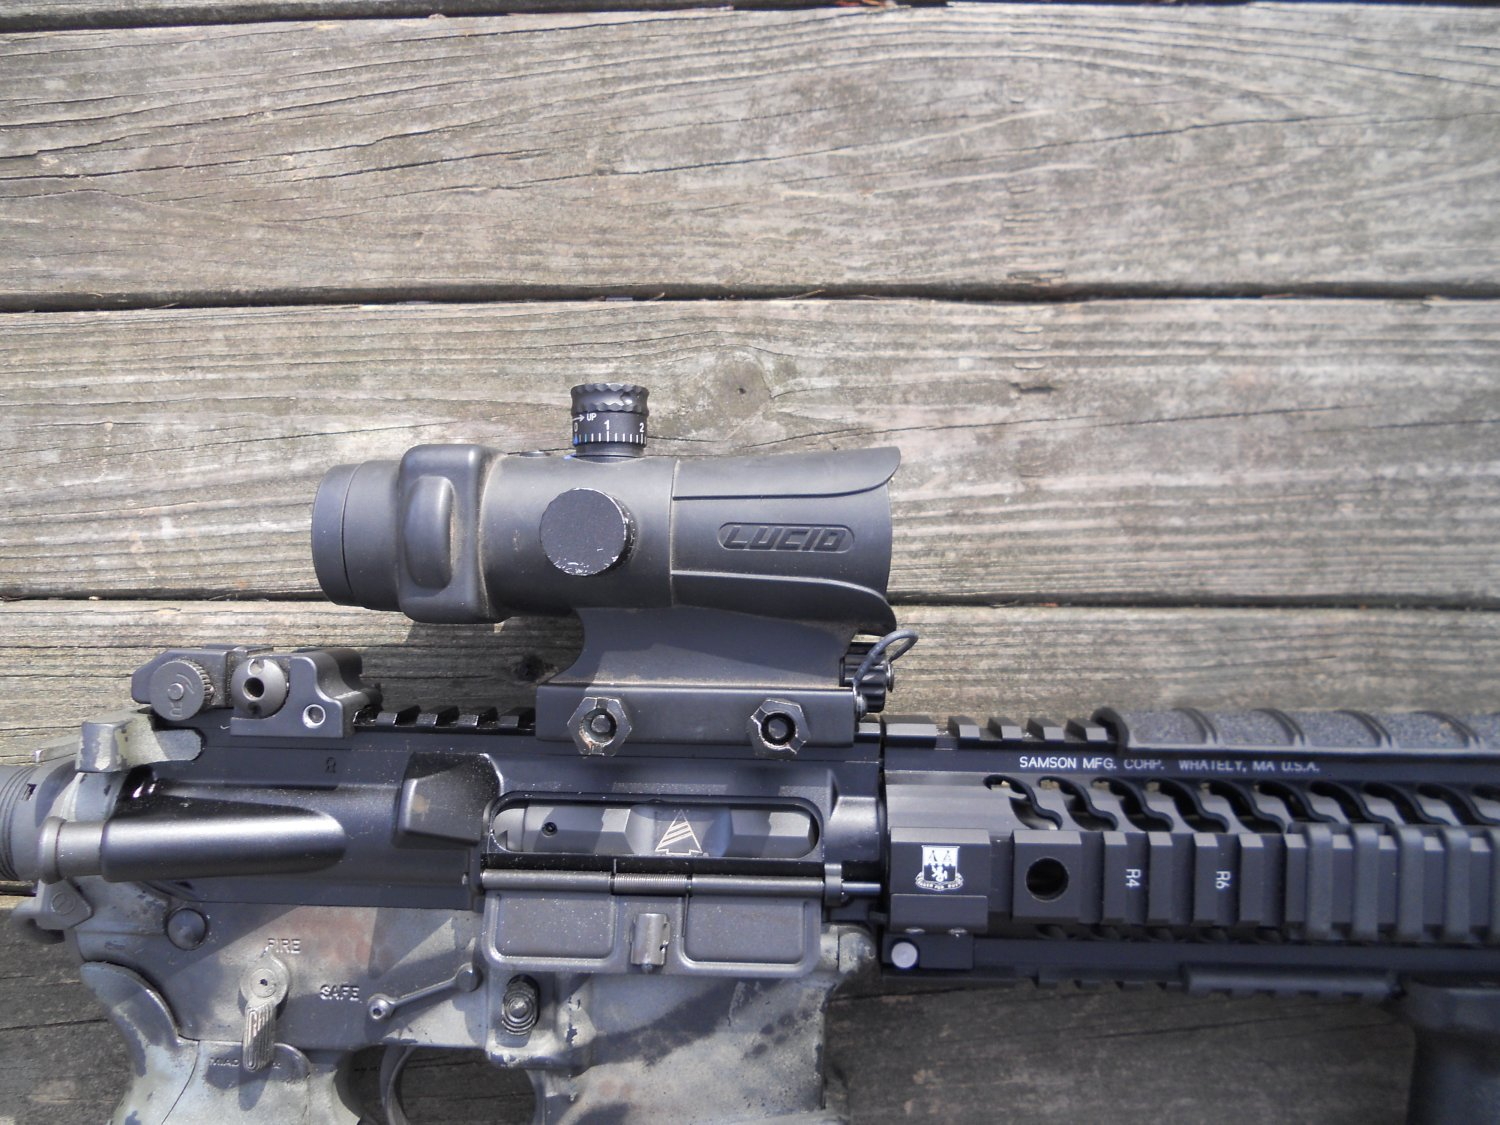 Lucid HD7 Red Dot Sight with Auto-Brightness Reticle Capability: Best Combat Optic under $500 for Close Quarters Battle (CQB)?